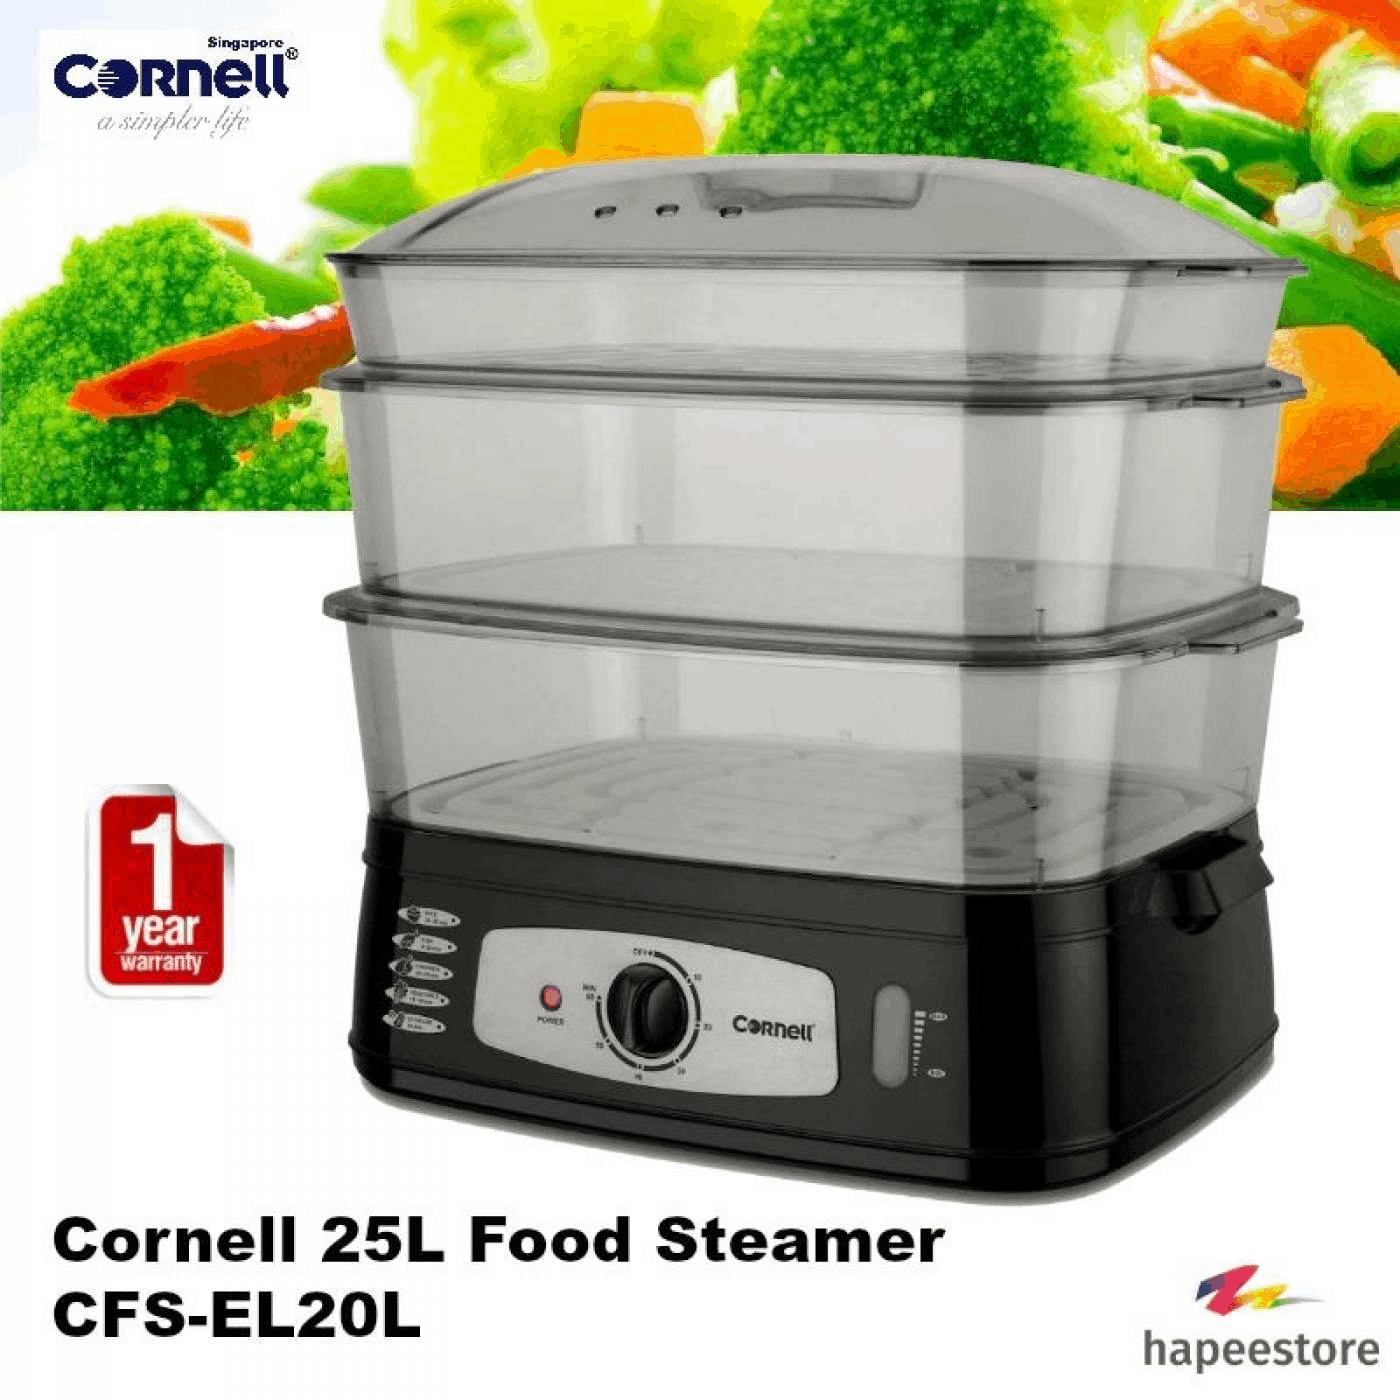 Easy to use and clean Food Steamer in Singapore cheap prices